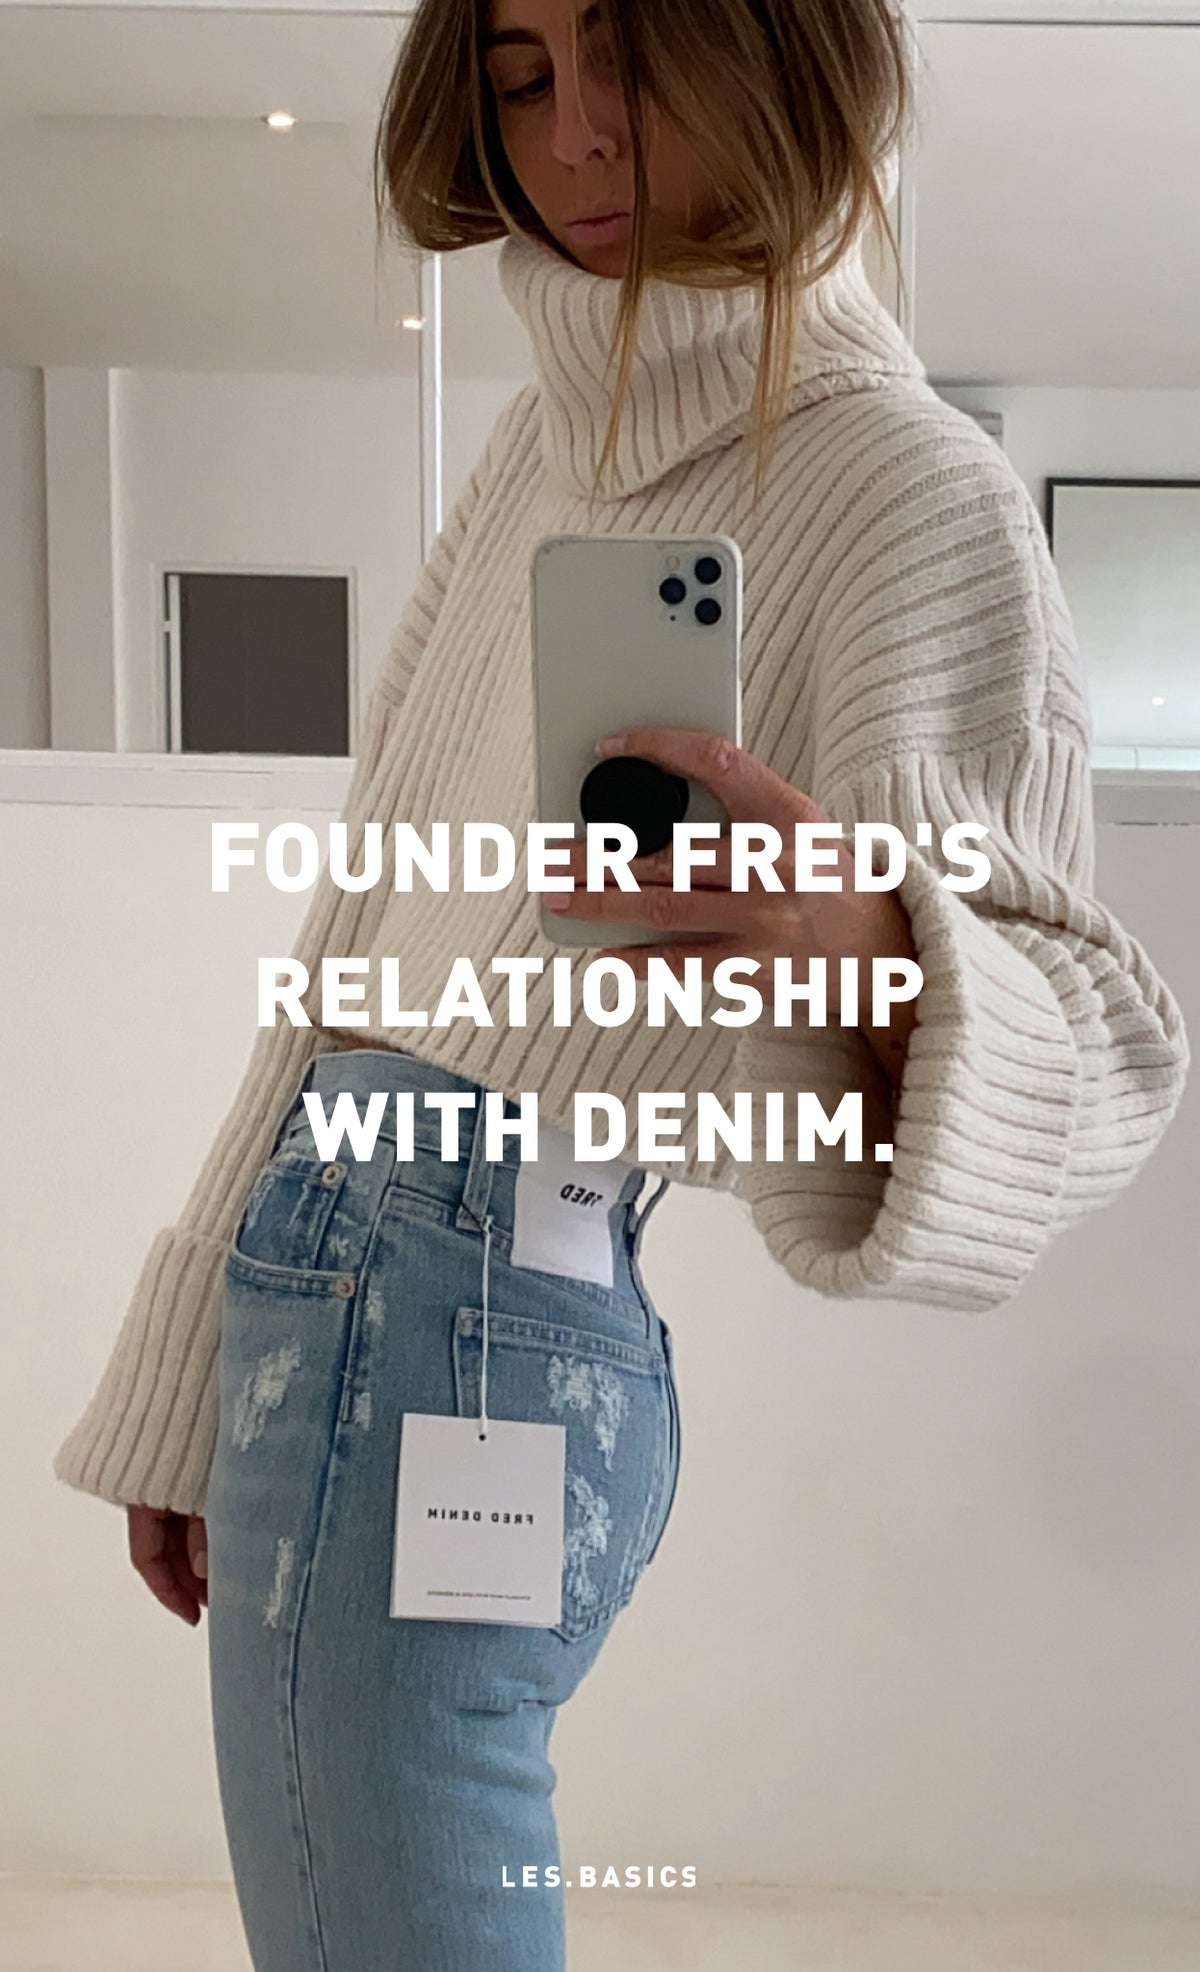 Founder Fred's relationship with denim